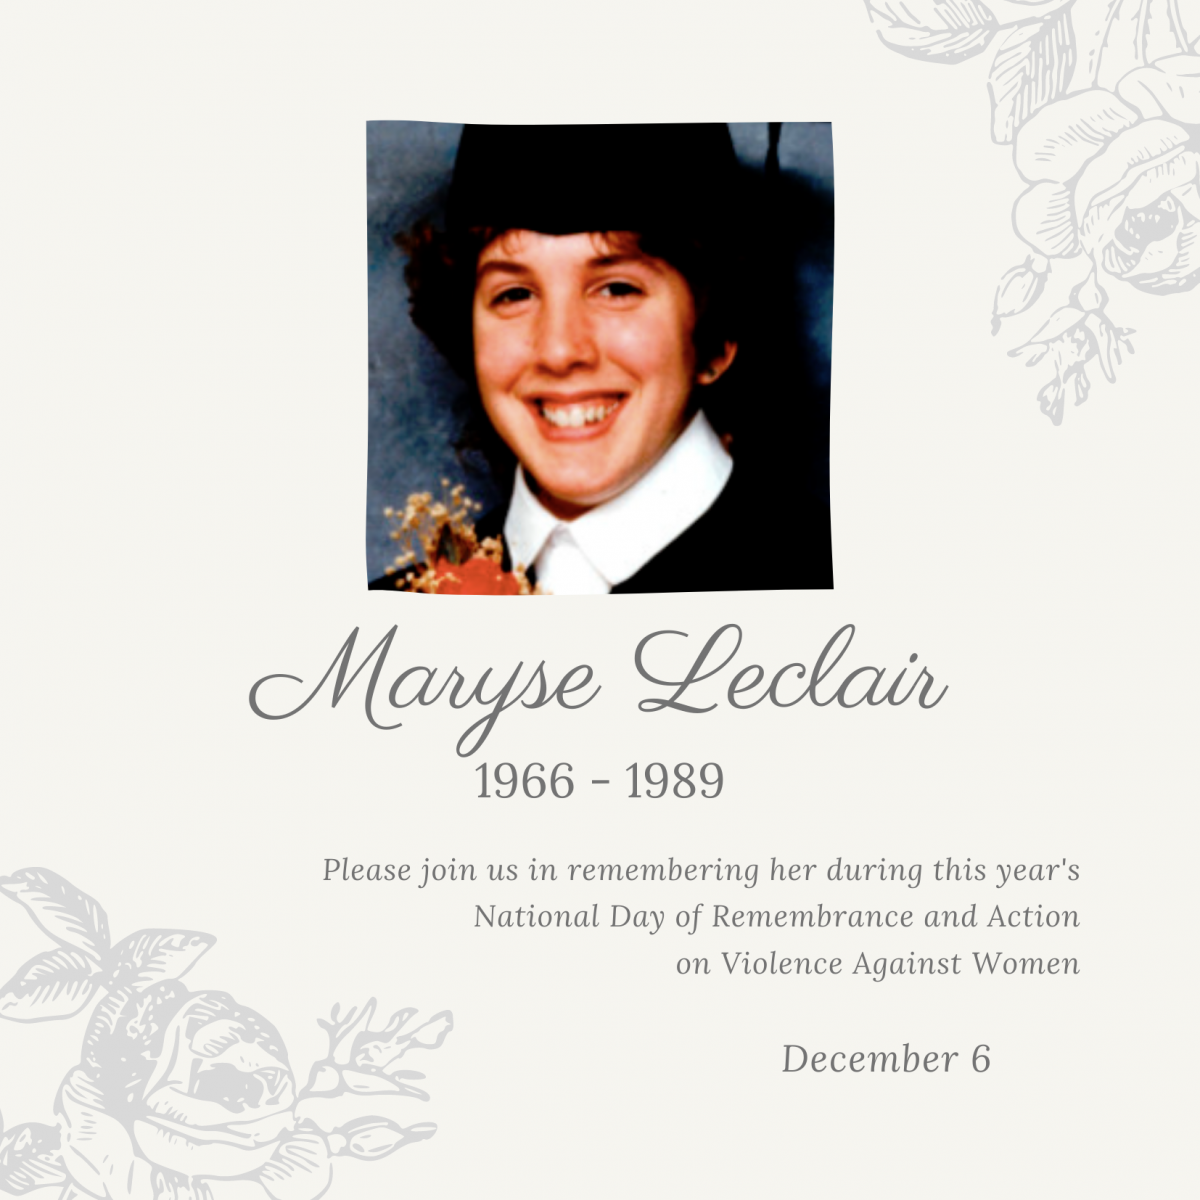 Maryse Leclair. 1966 to 1989.